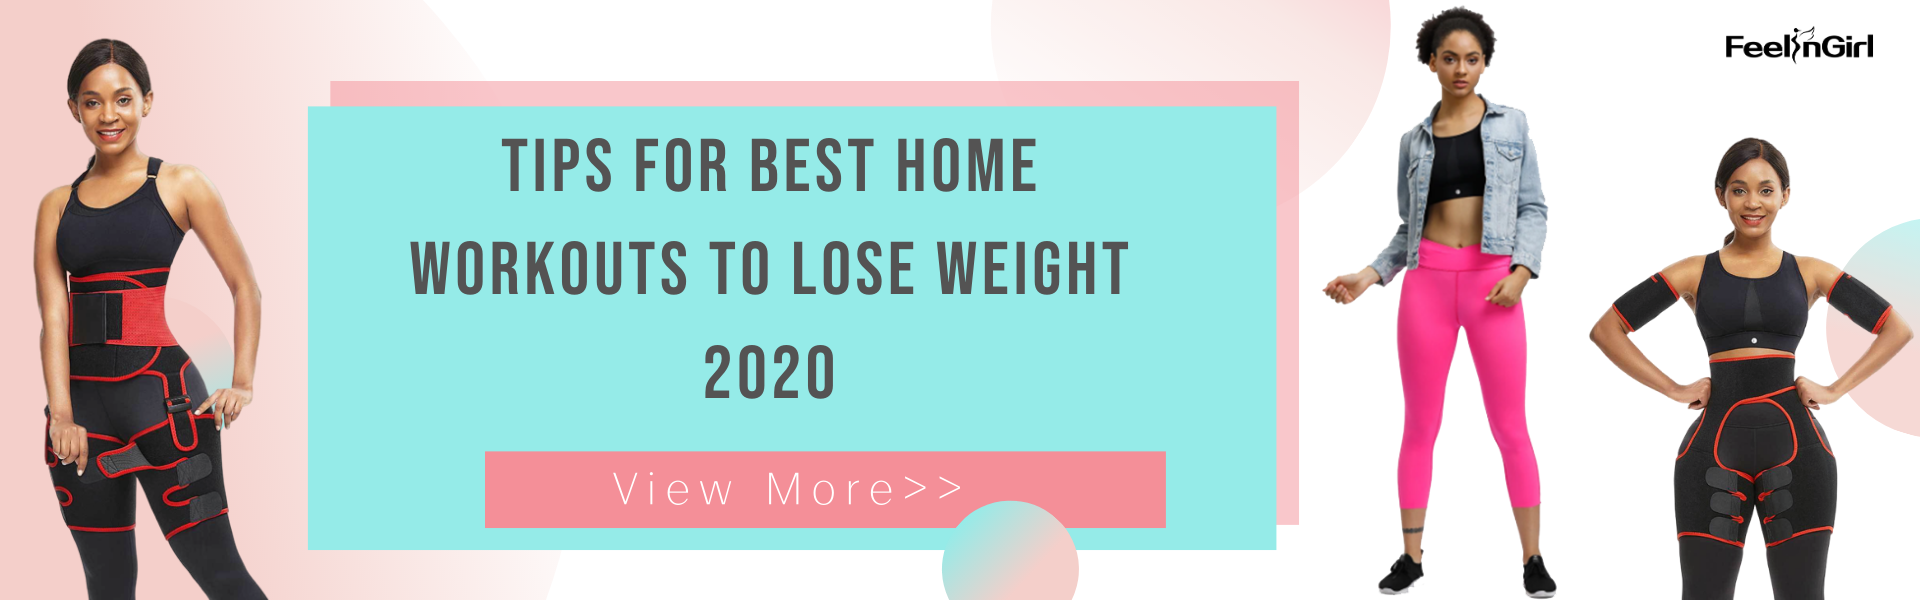 Tips for Best Home Workouts to Lose Weight 2020